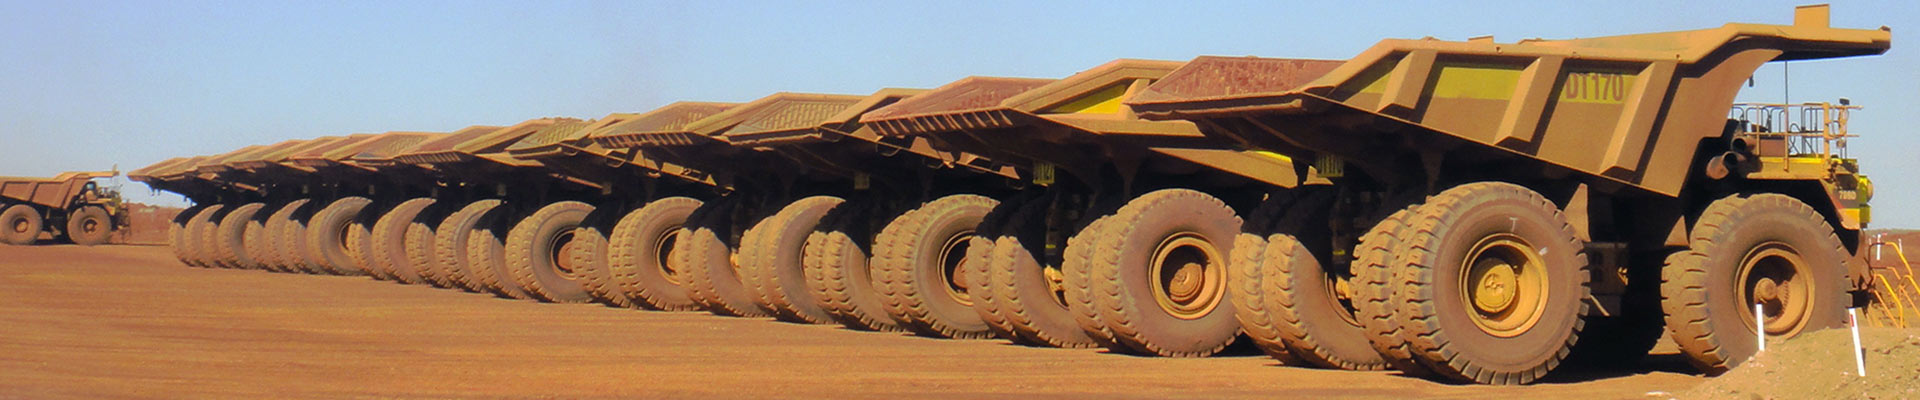 Cheap off road tires online for mining trucks